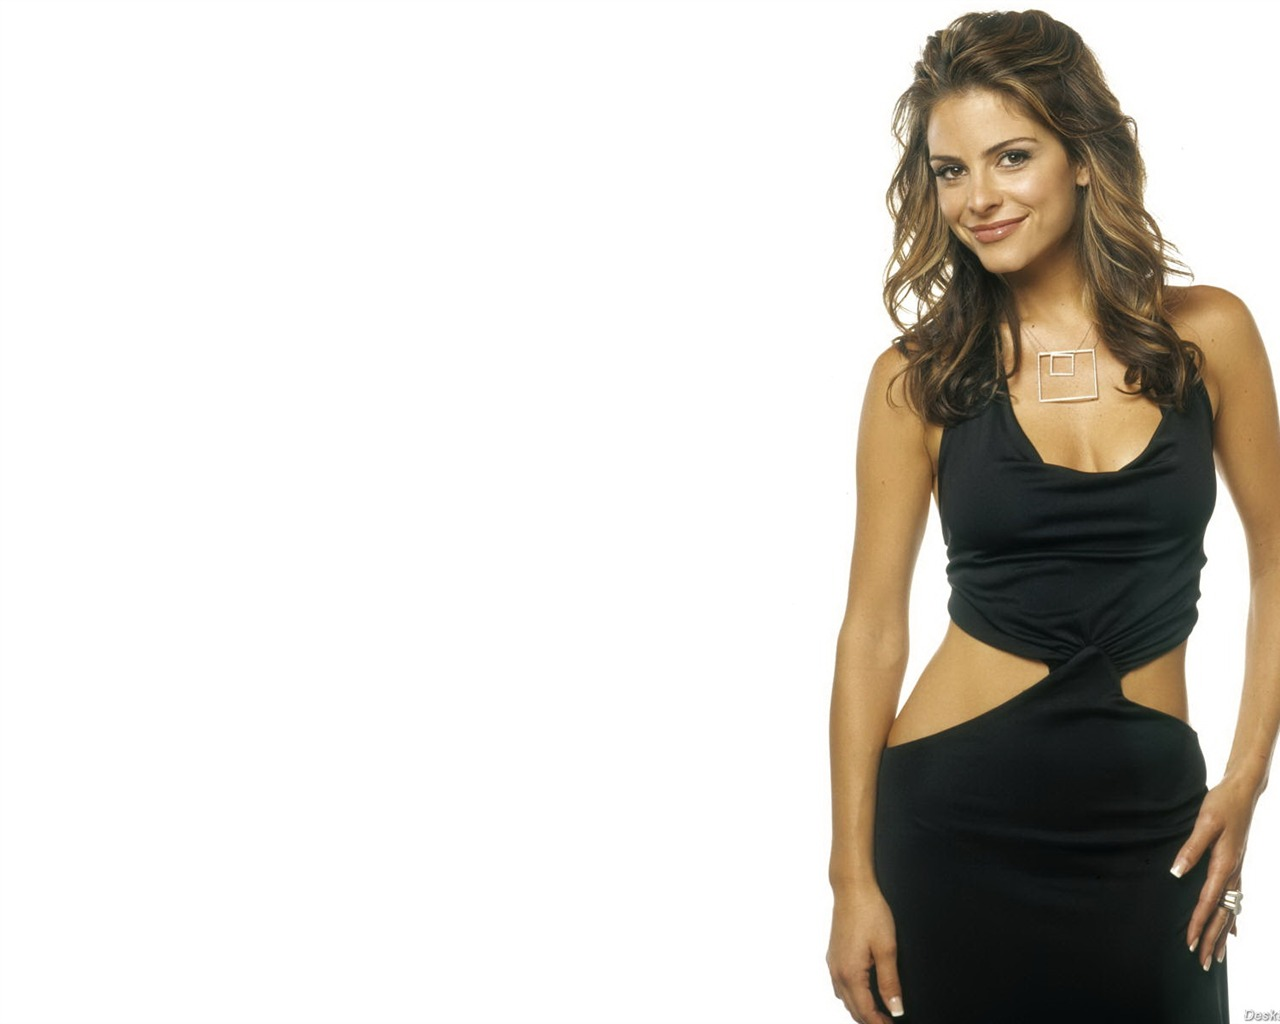 Maria Menounos #010 - 1280x1024 Wallpapers Pictures Photos Images